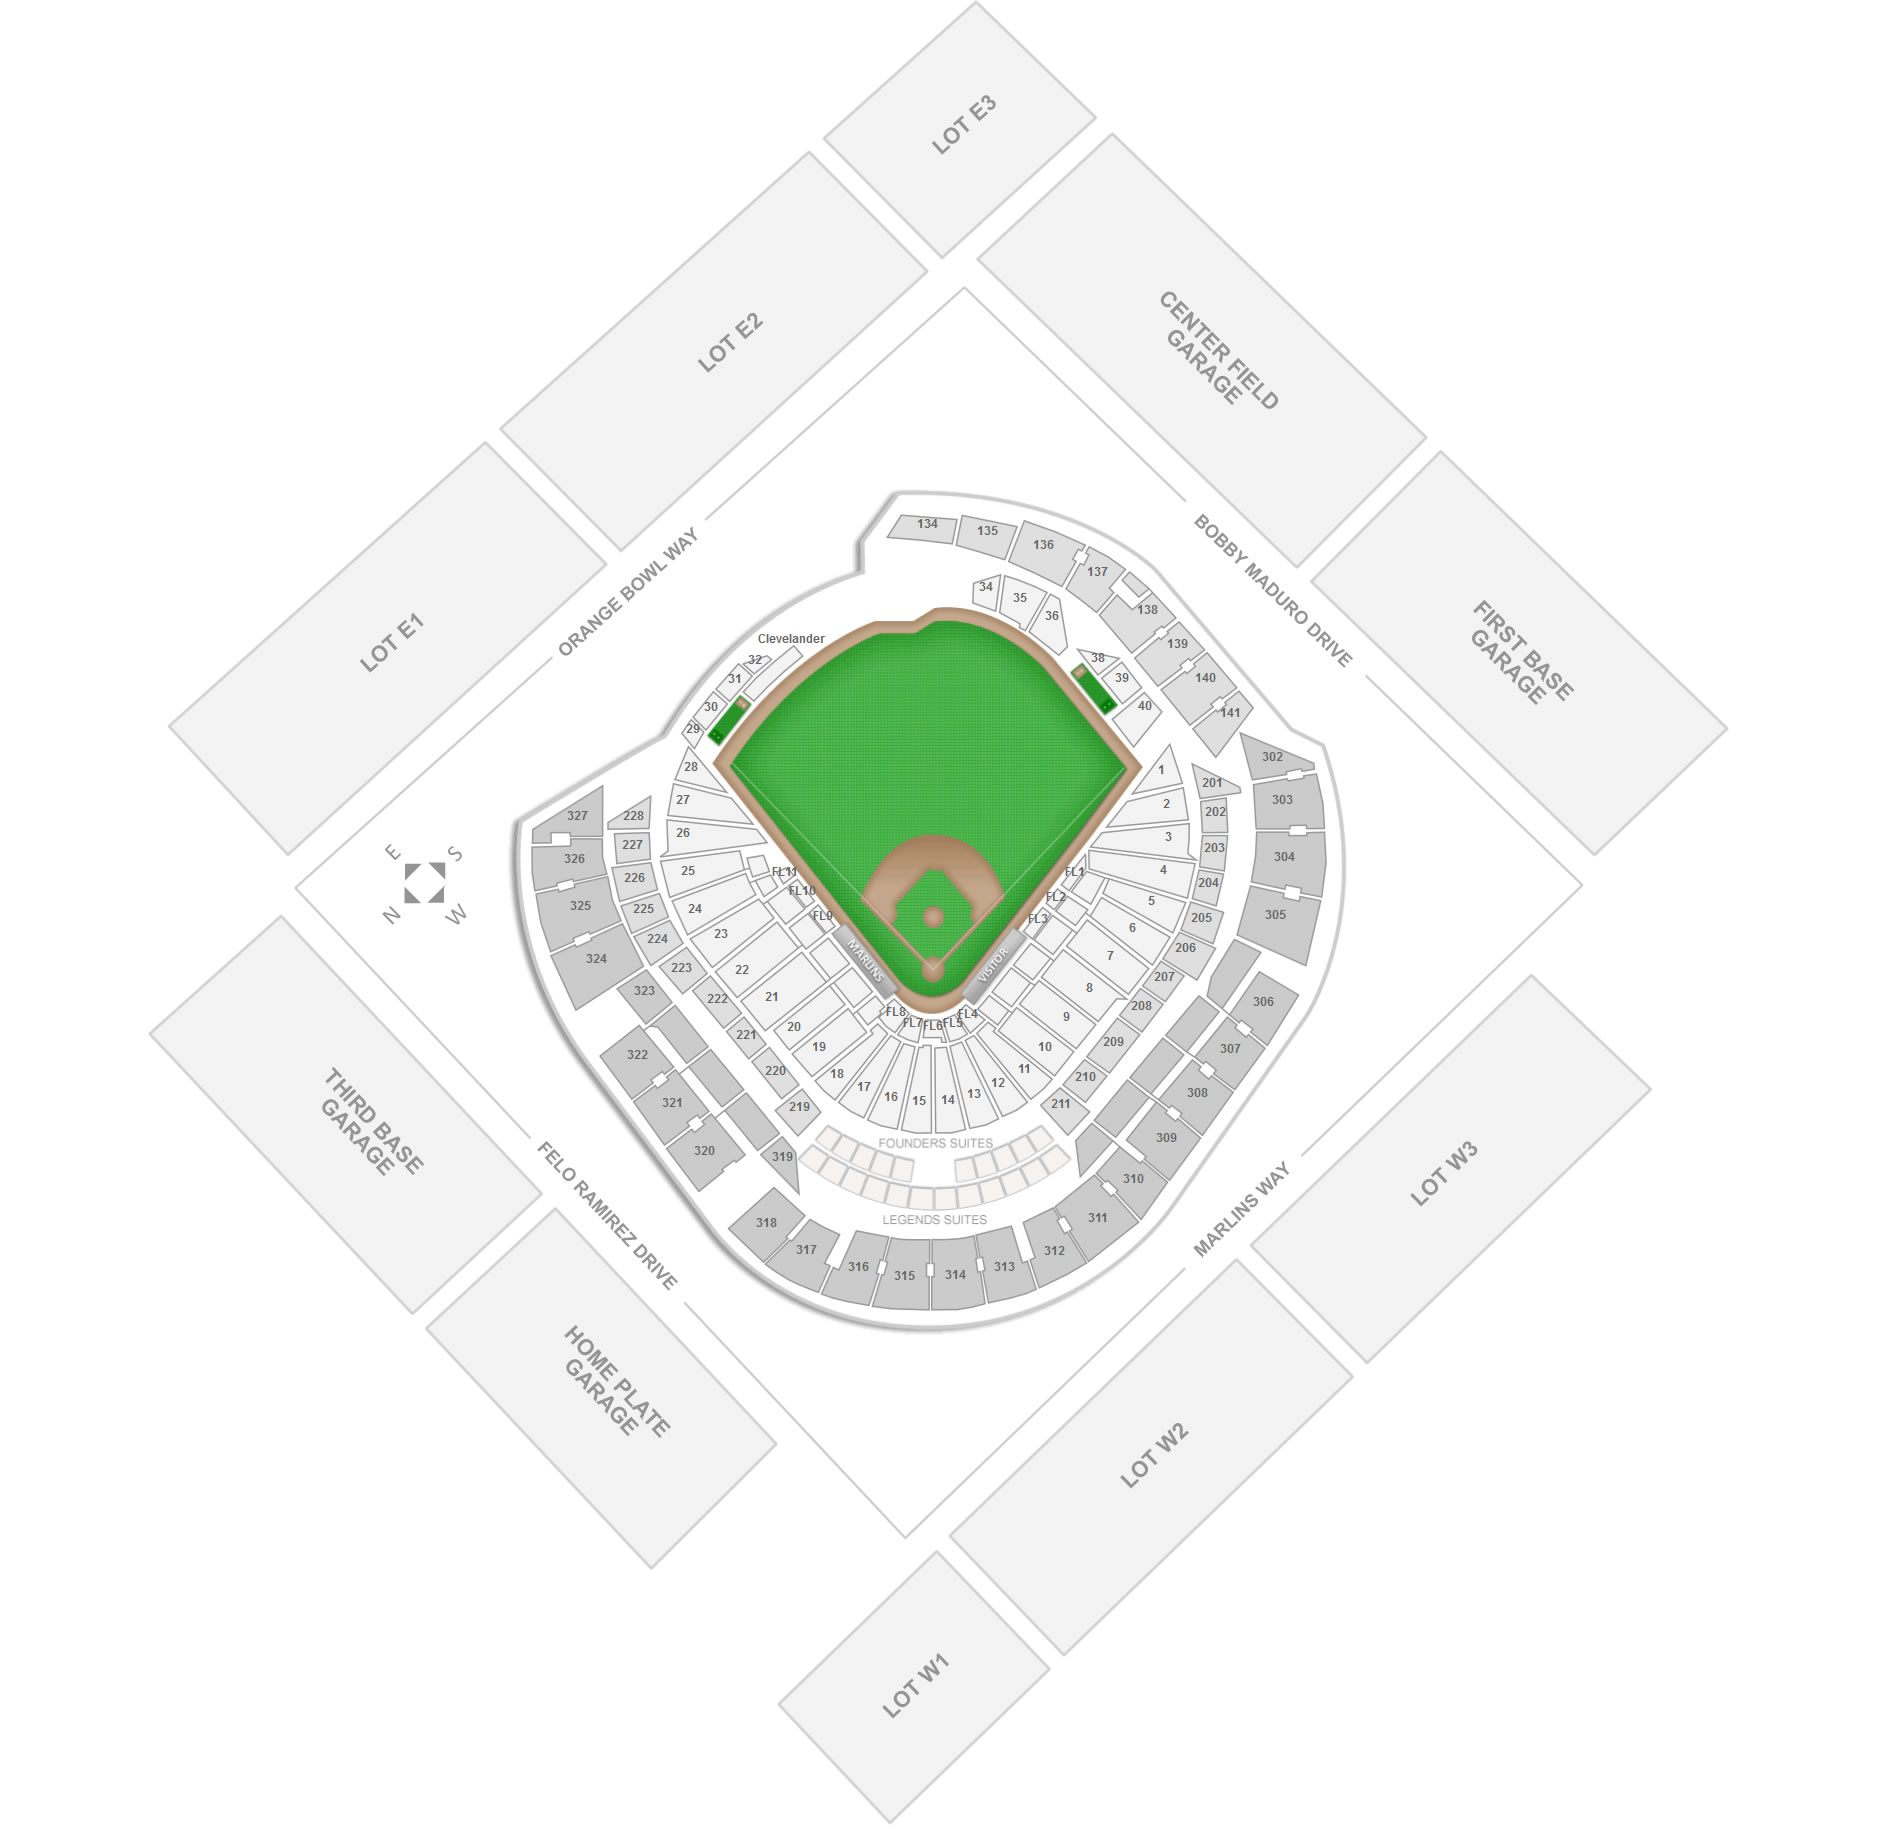 Miami Marlins Marlins Park Seating Chart & Interactive Map